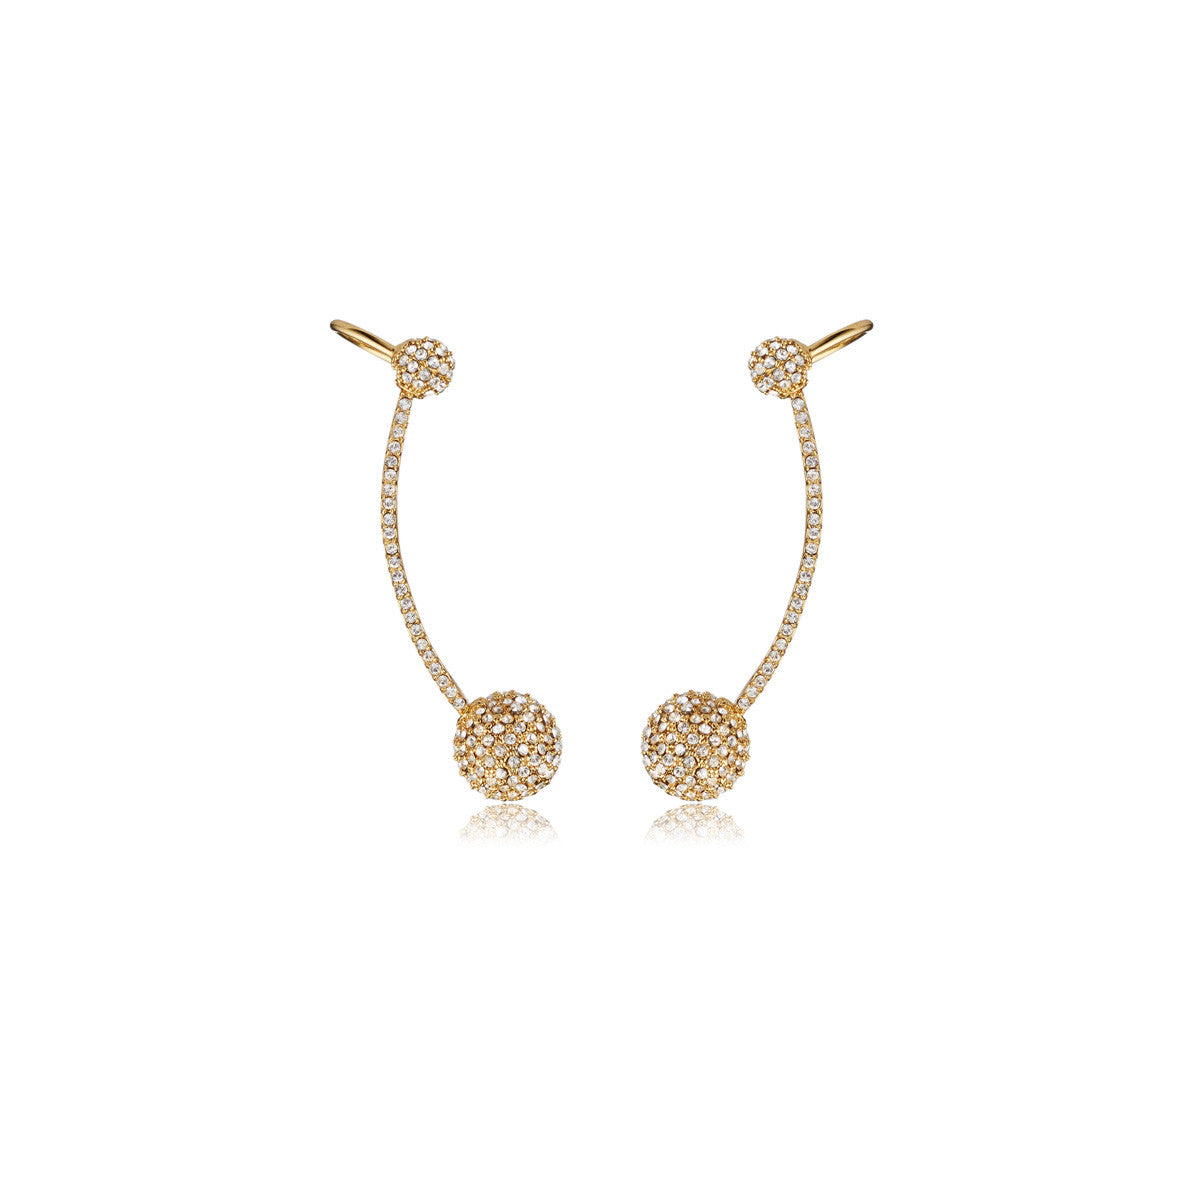 Solid brass, 18K gold plated Stella Crinita crystal ear cuffs inlaid with hundreds of dazzling Swarovski® crystals curve to fit the ear perfectly - front